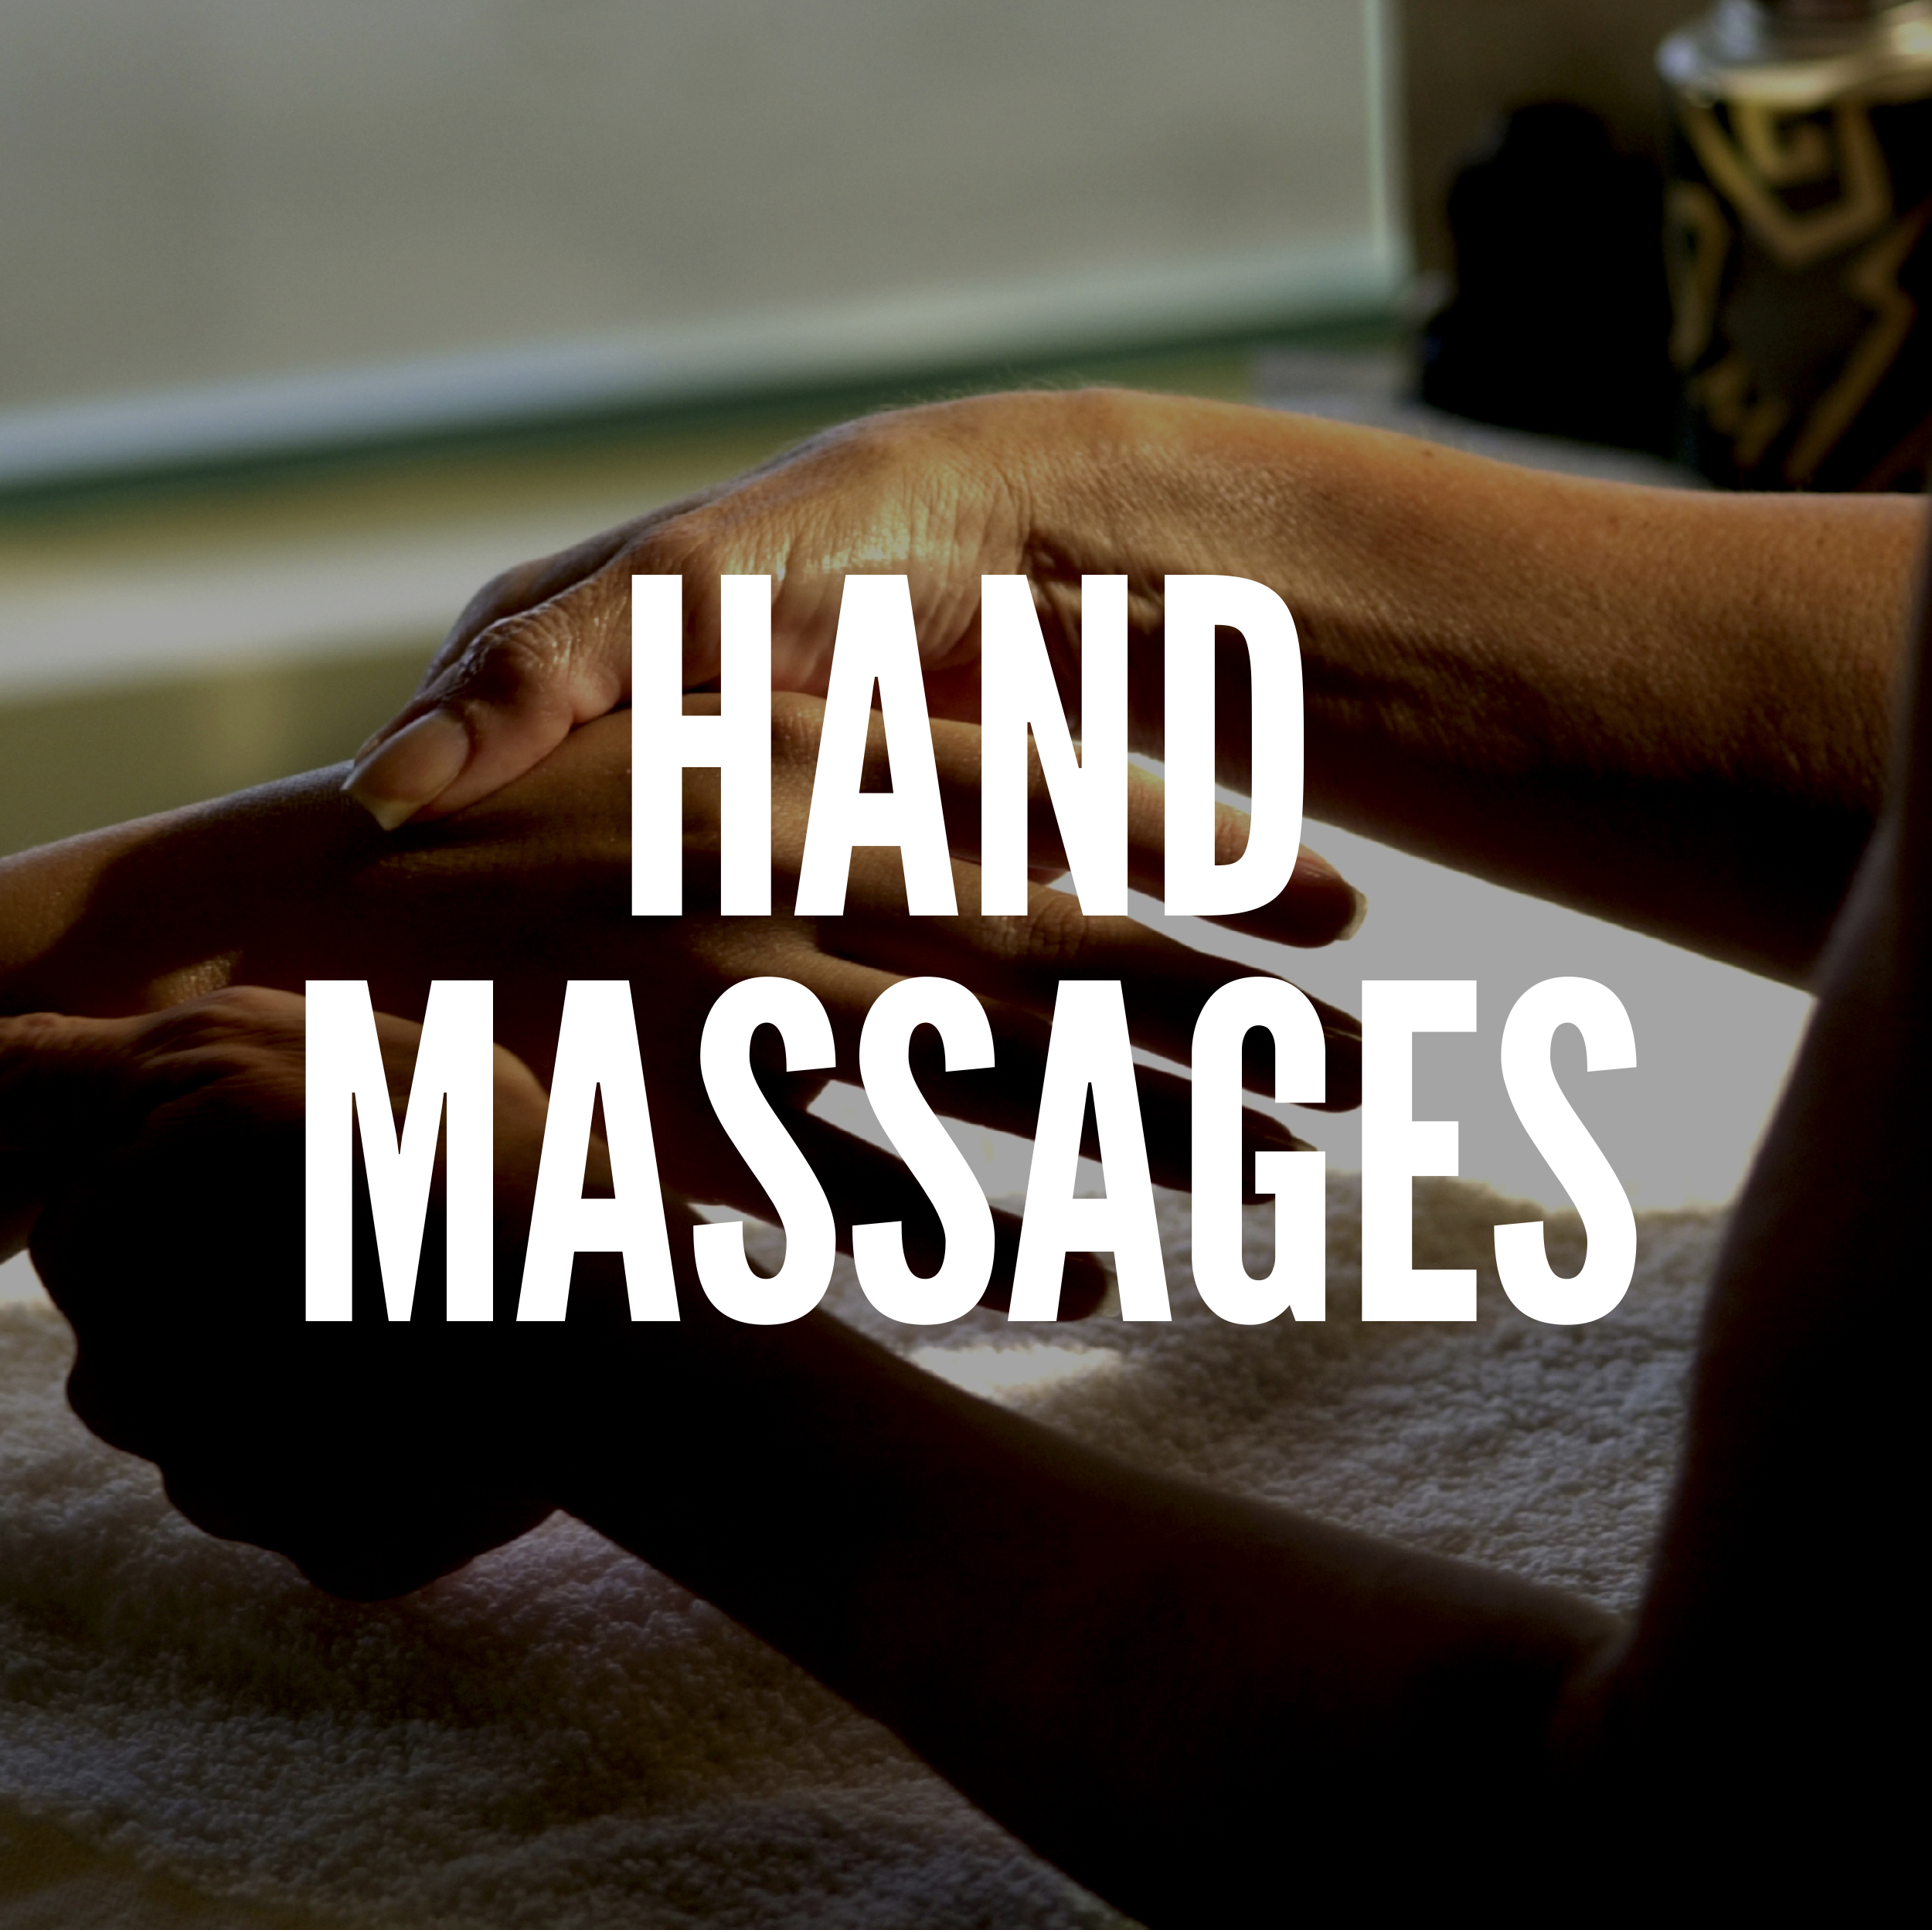 Hand Massages.jpg